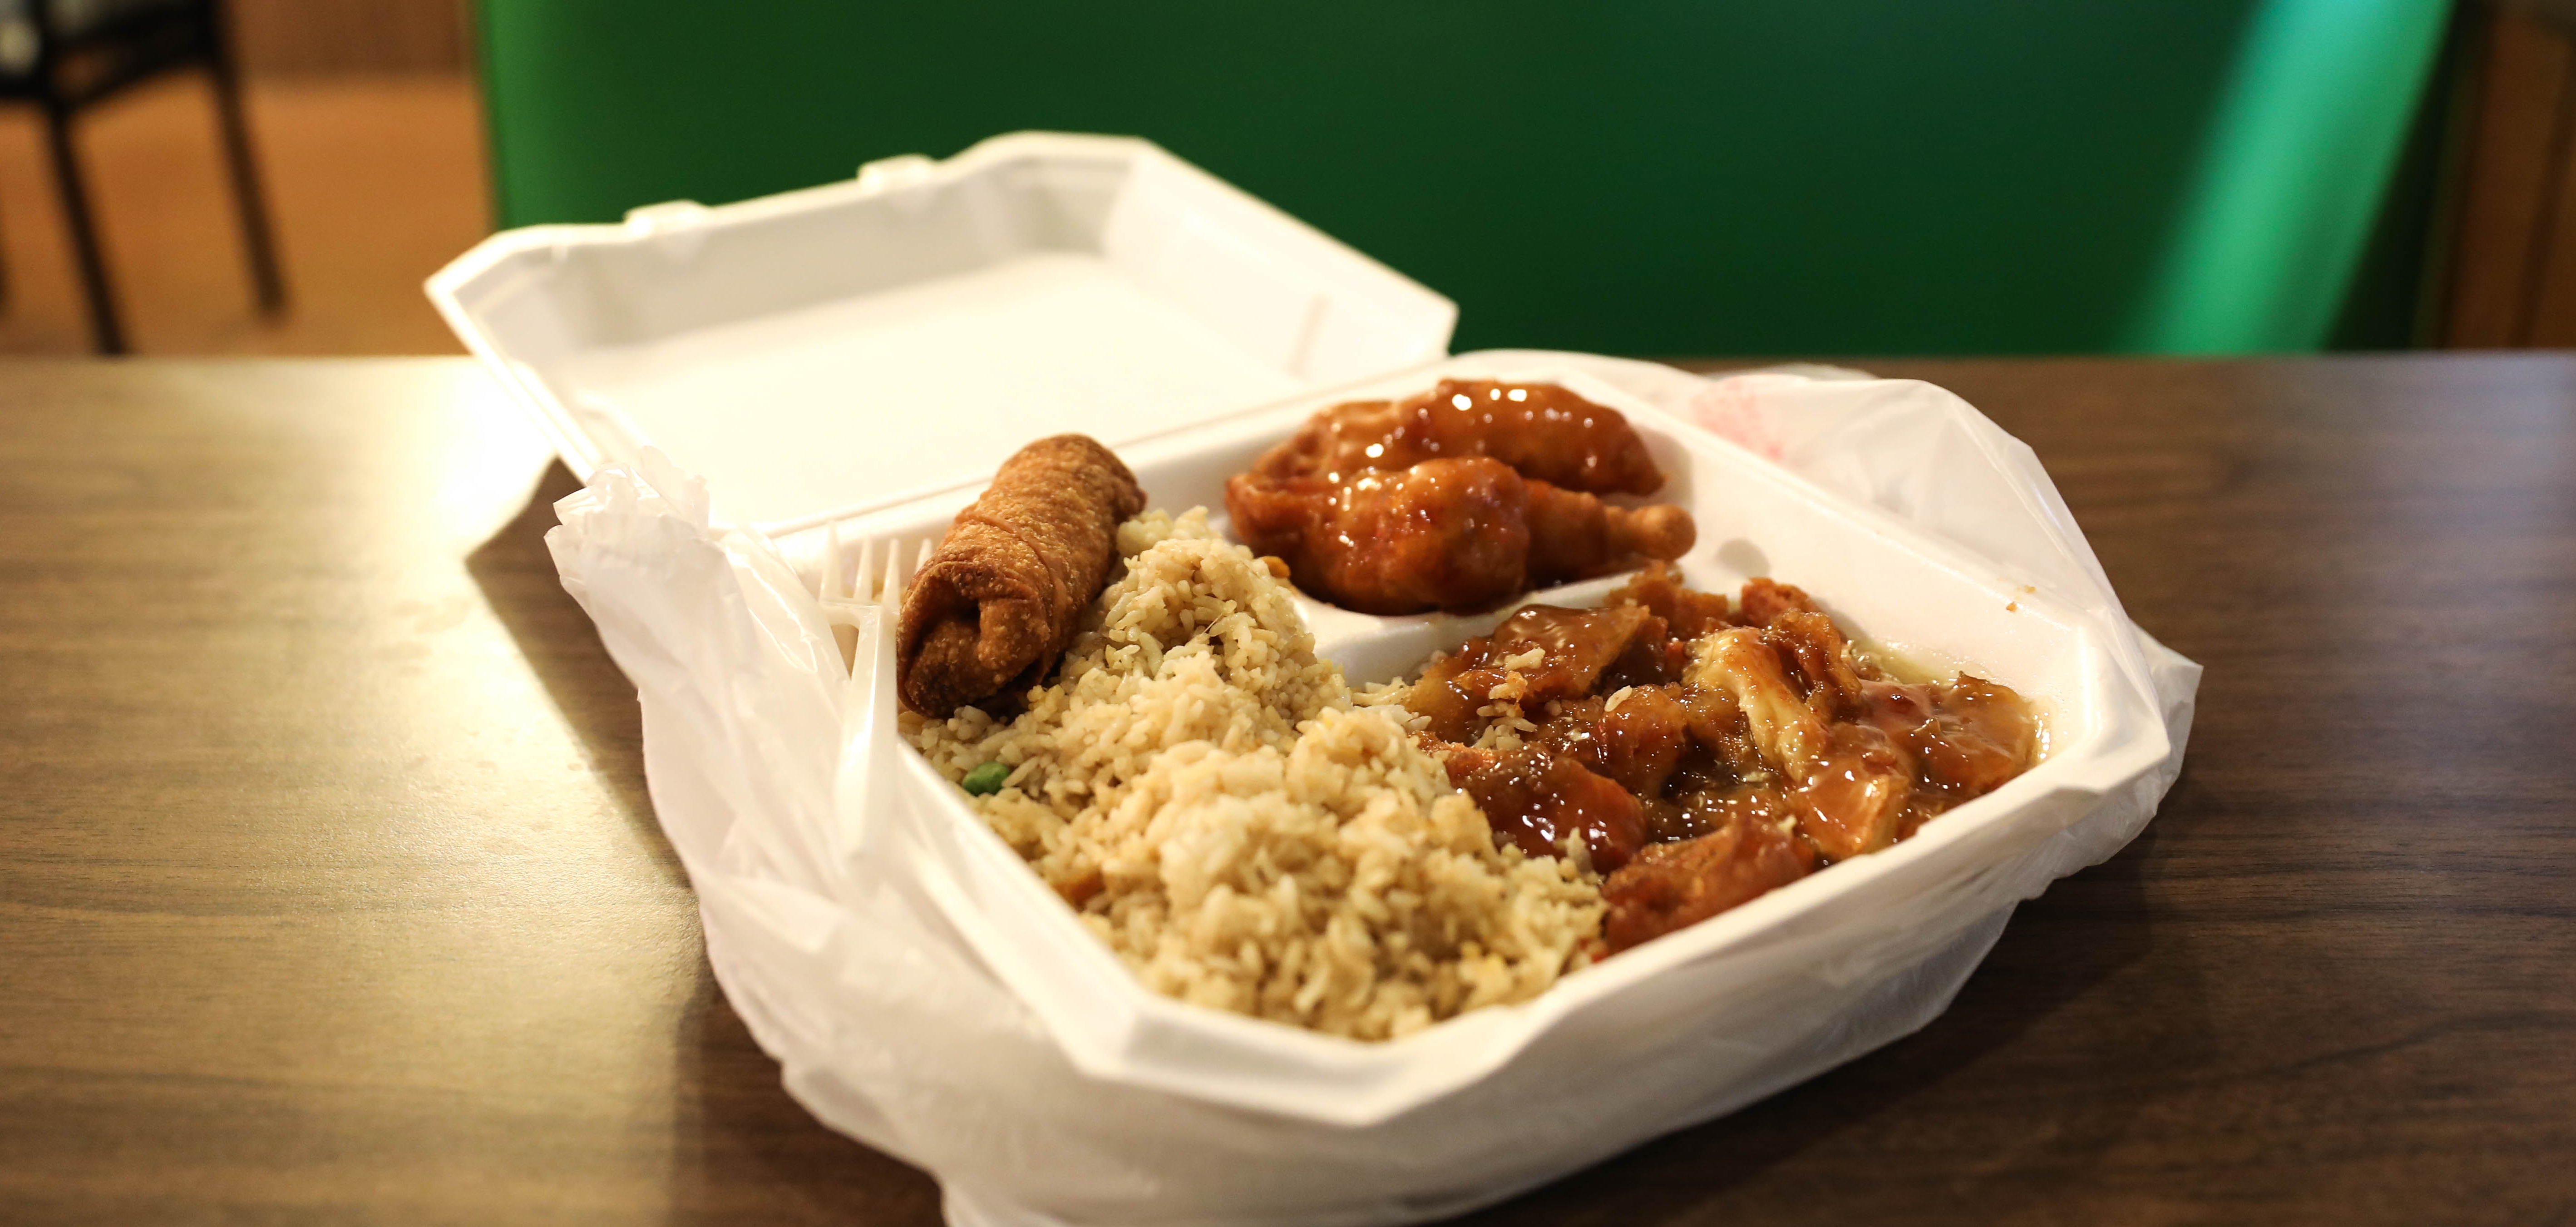 The lemon sweet and sour chicken from New Hong Kong on Tulsa, Oklahoma's Route 66